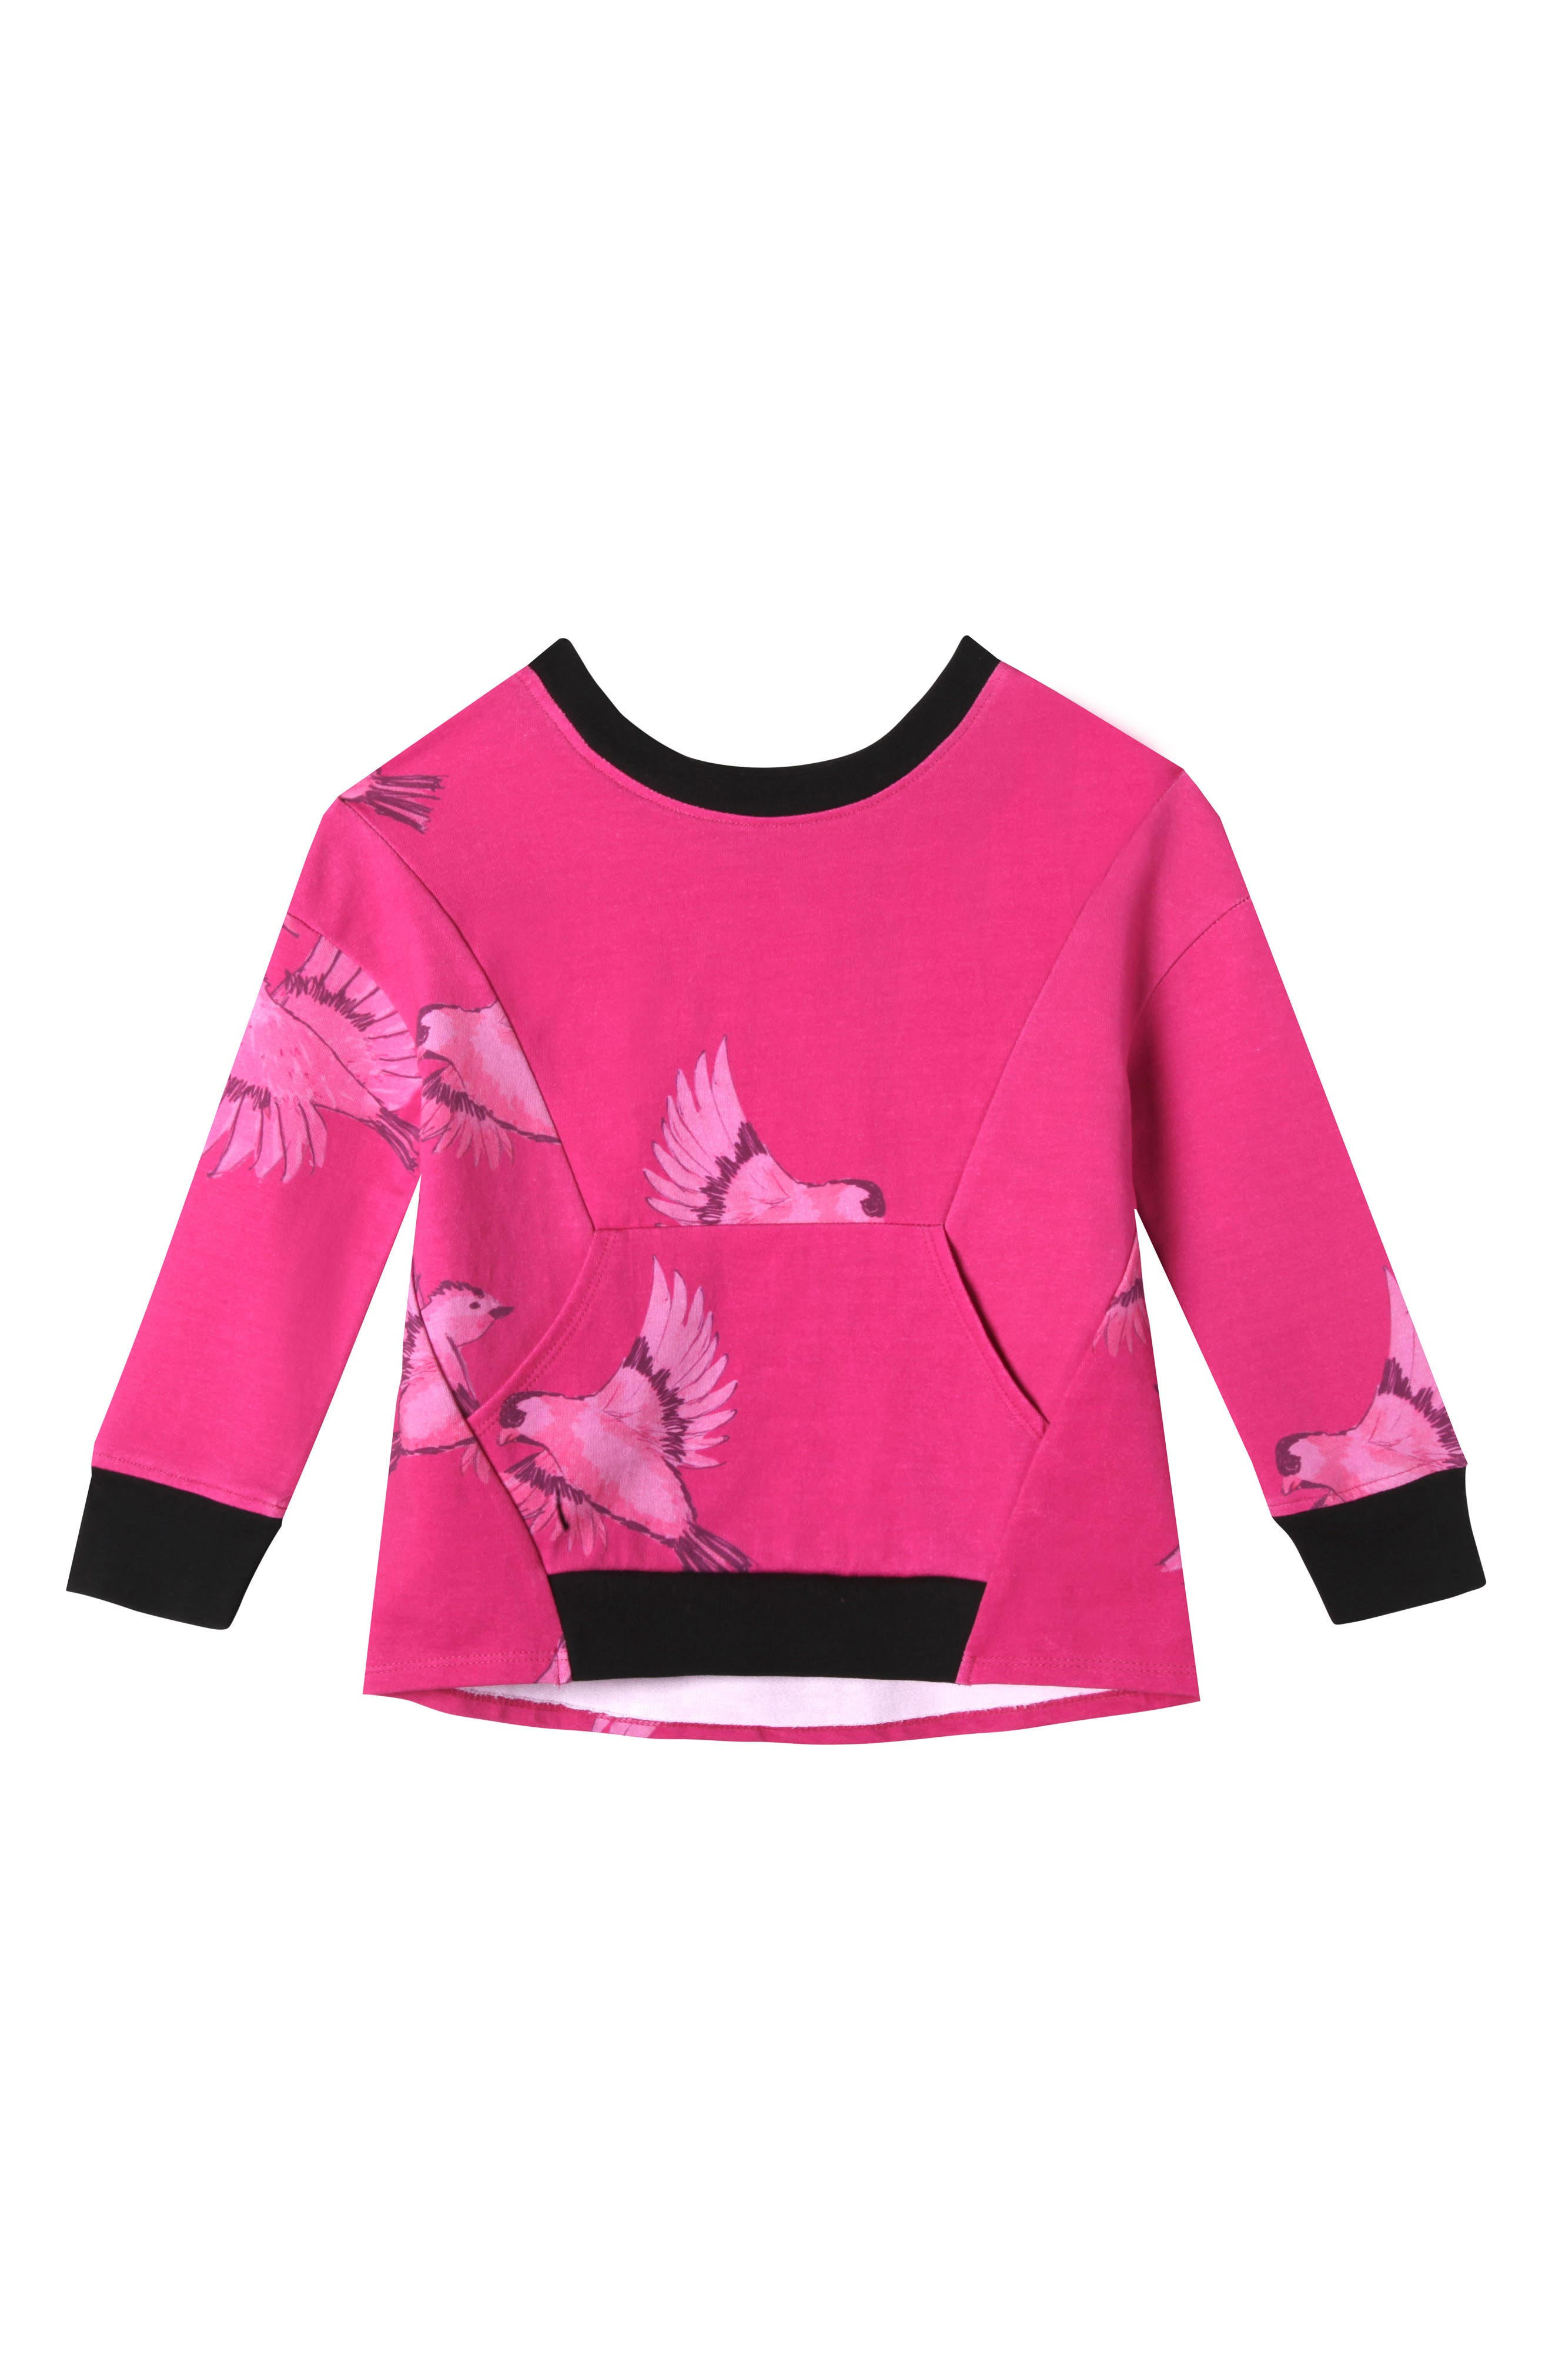 Art & Eden Amelia Sweatshirt (Toddler Girls & Little Girls)